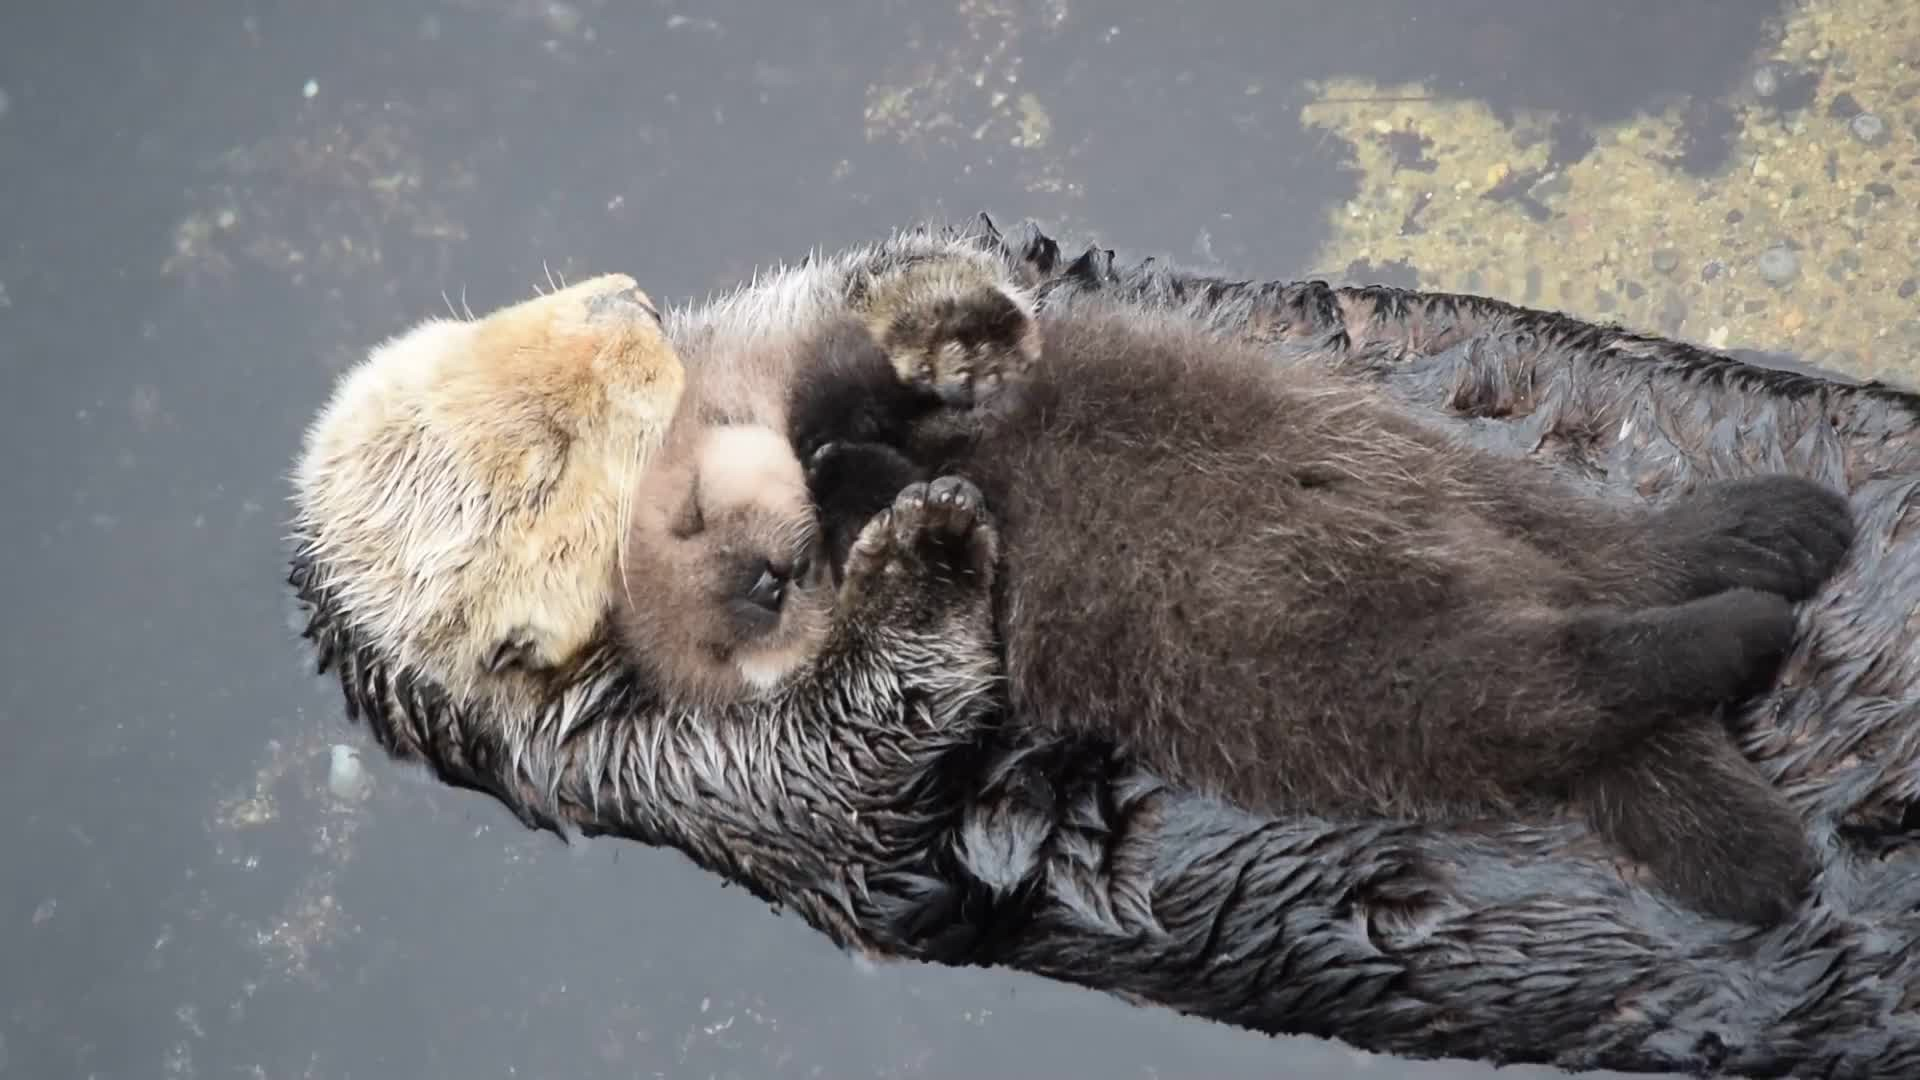 Res: 1920x1080, 1 Day Old Sea Otter Trying to Sleep on Mom GIF by (@c91999) | Rechercher,  Faire et partager des GIFs Gfycat